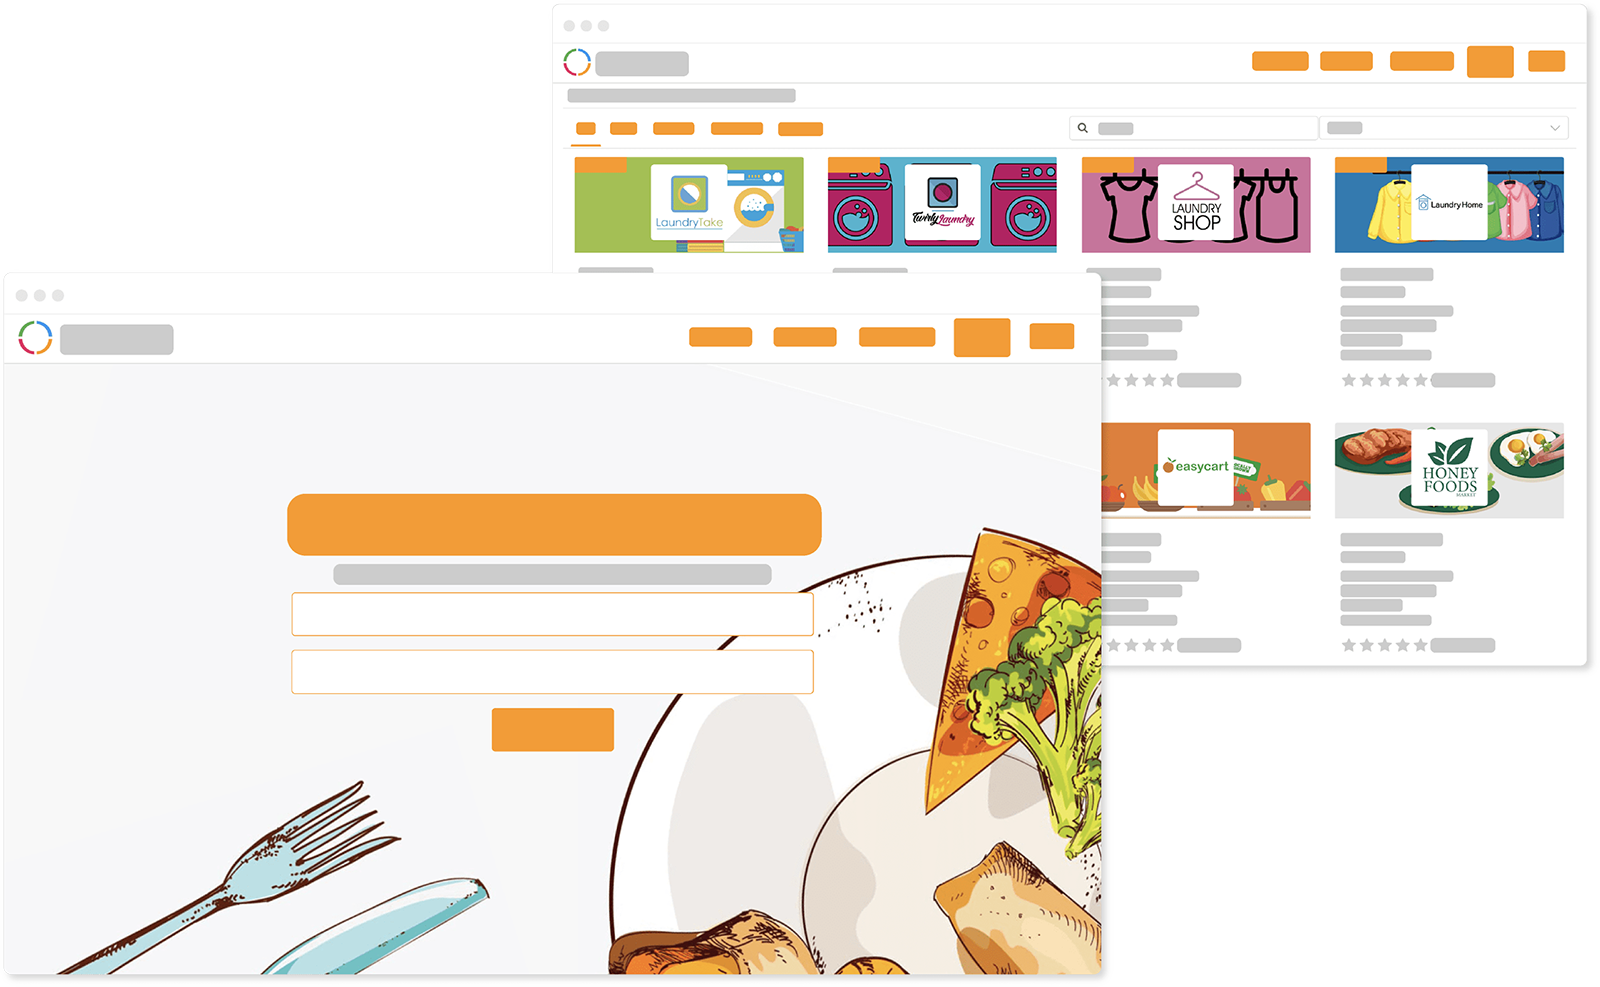 Ordering Website Ordering Online System The Website With Your Brand